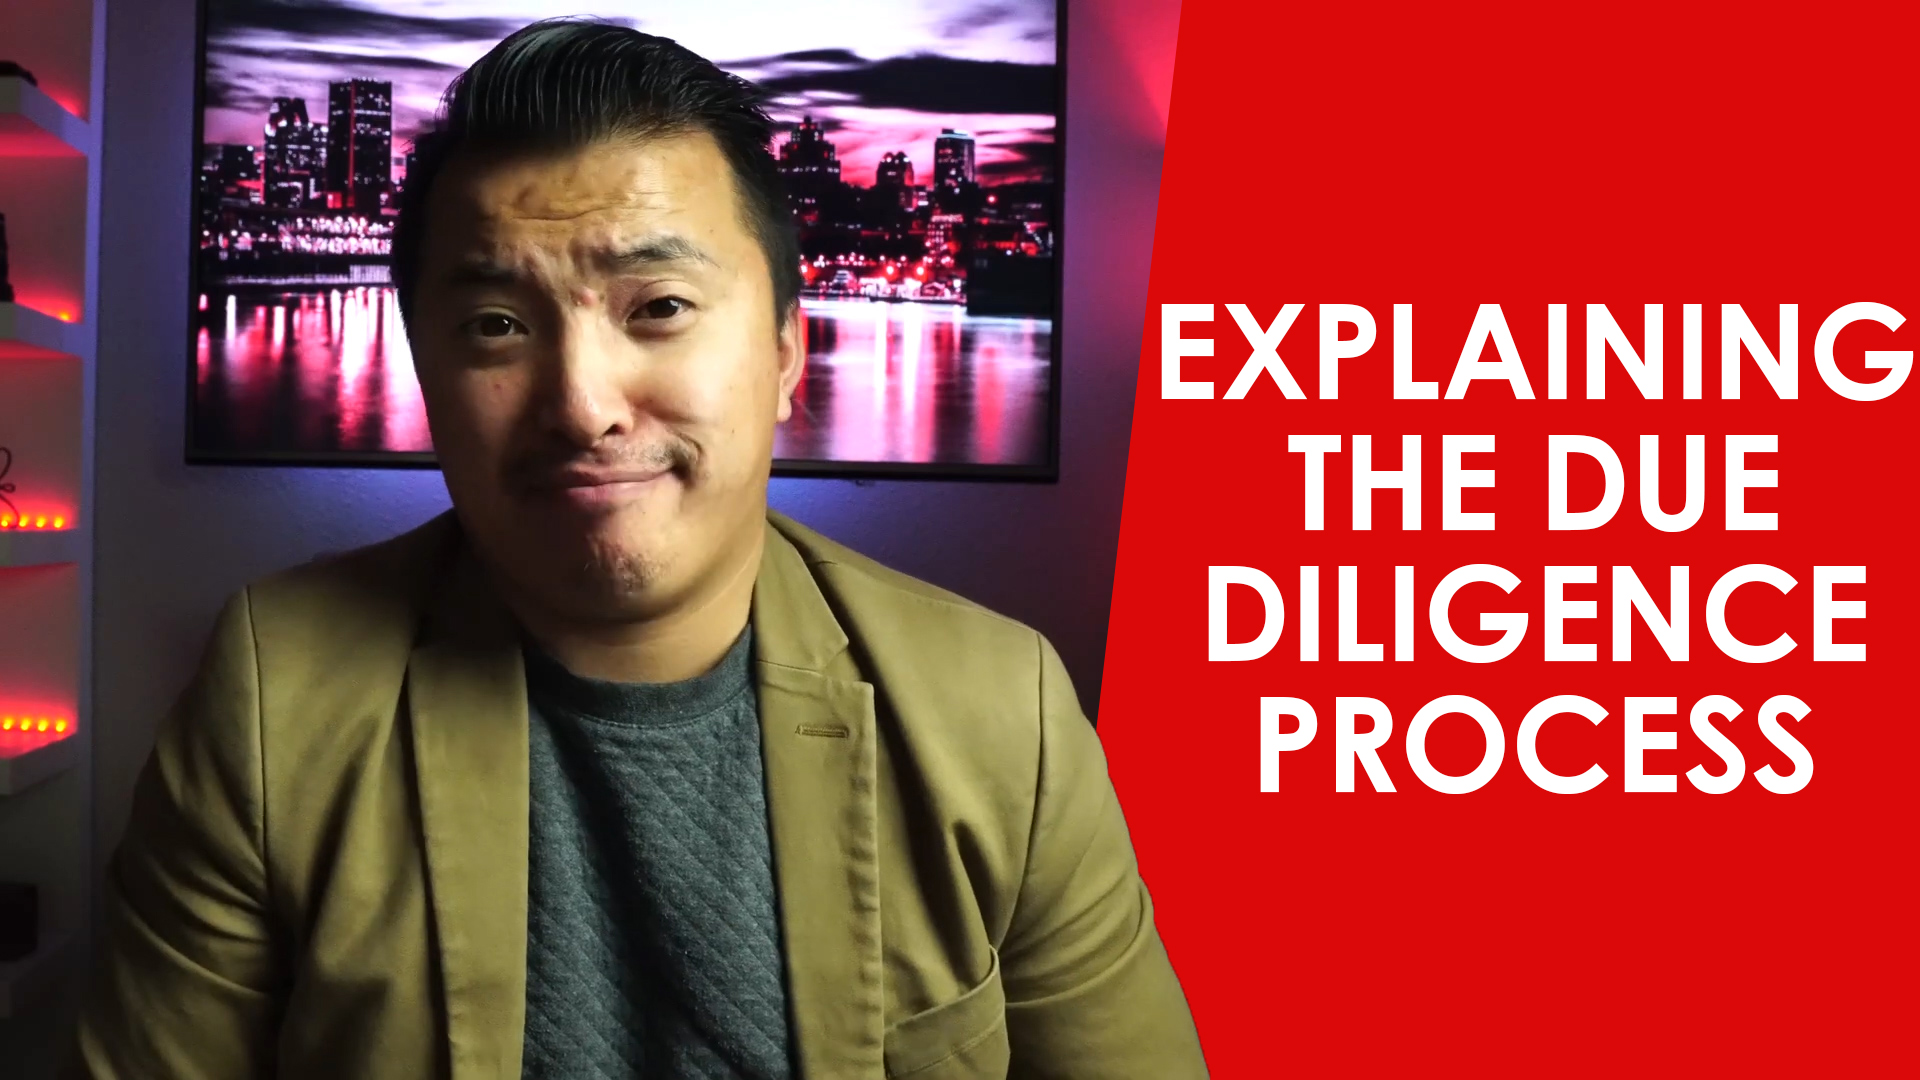 What You Need to Know About the Due Diligence Process